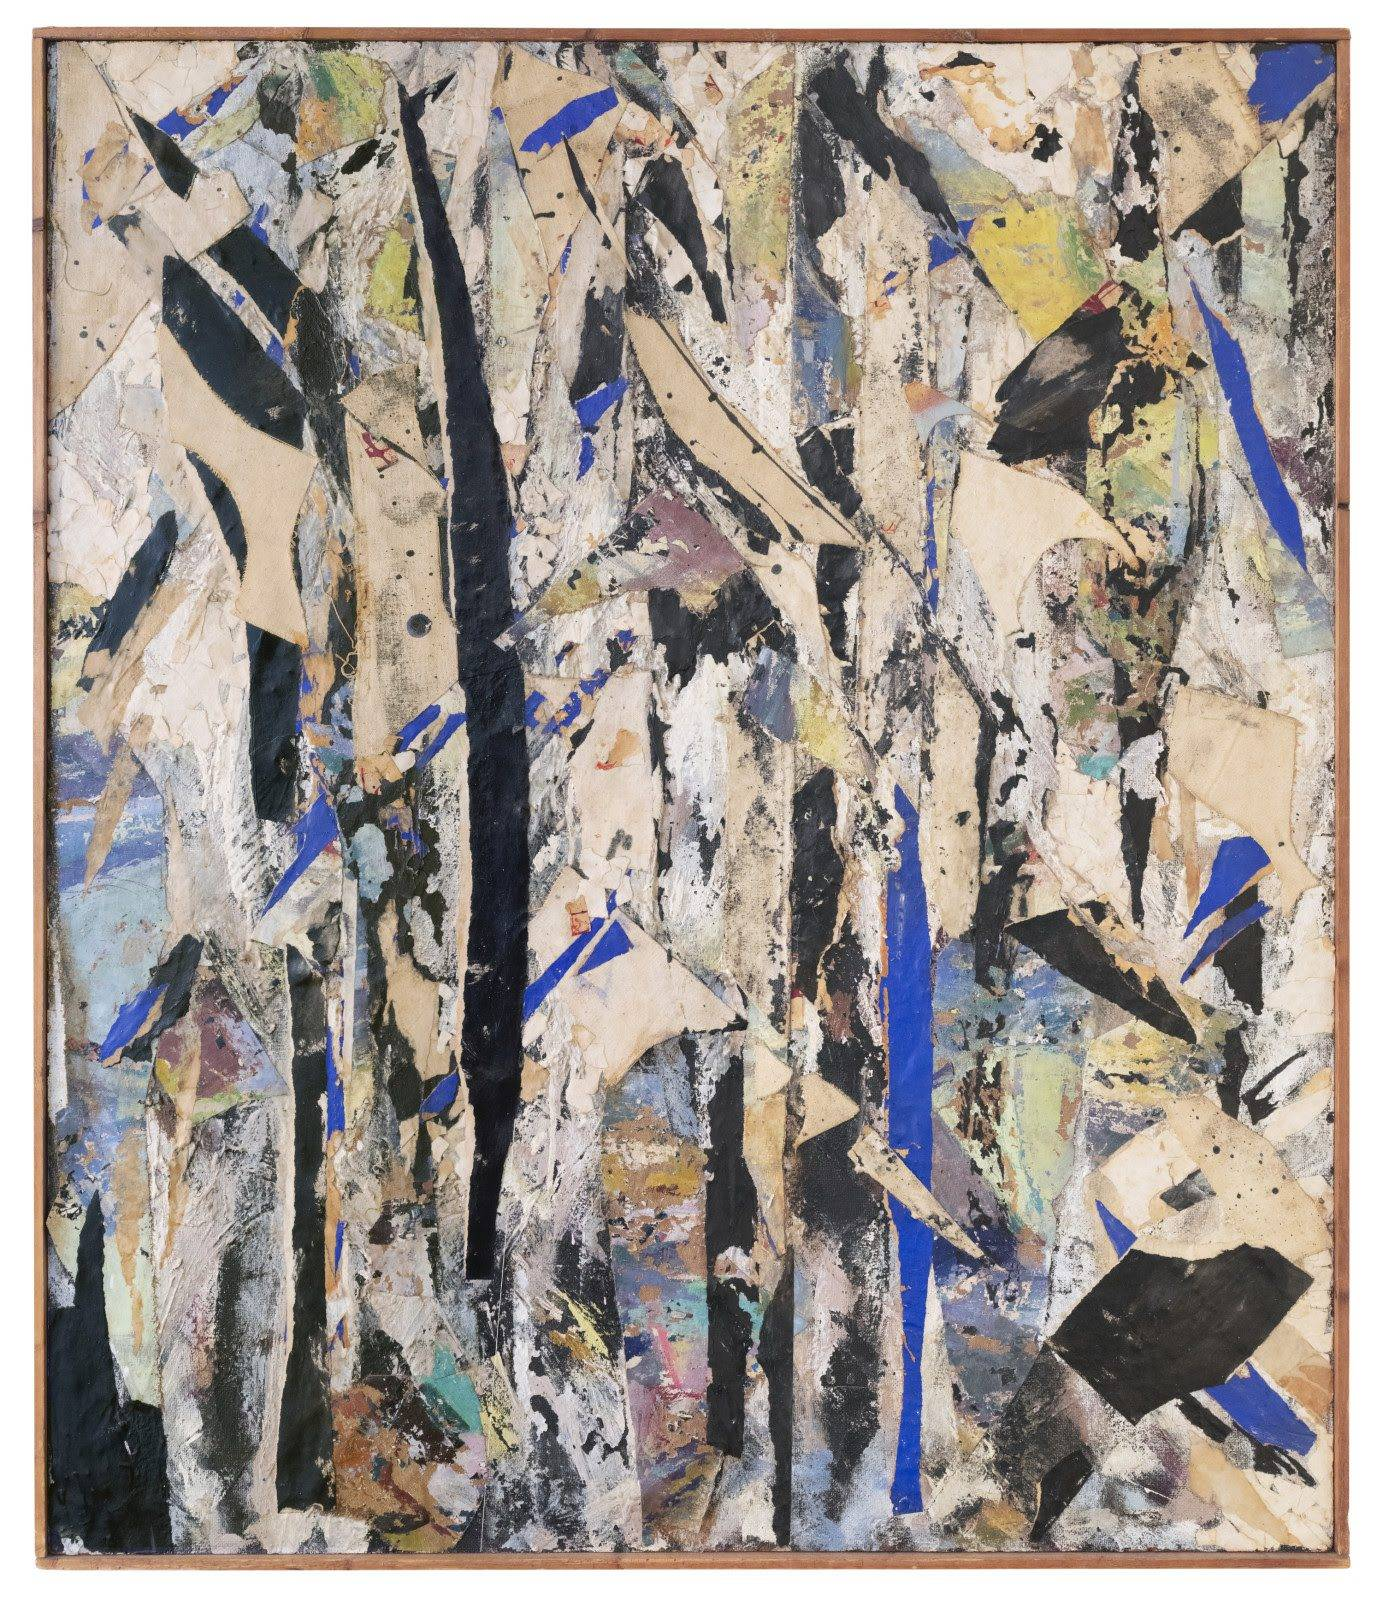 Lee Krasner, Untitled, 1954, oil, glue, canvas and paper collage on Masonite, 48 x 40 inches, 122 x 102 cm. © 2021 Pollock-Krasner Foundation / Artists Rights Society (ARS), New York. Private Collection, New York City.